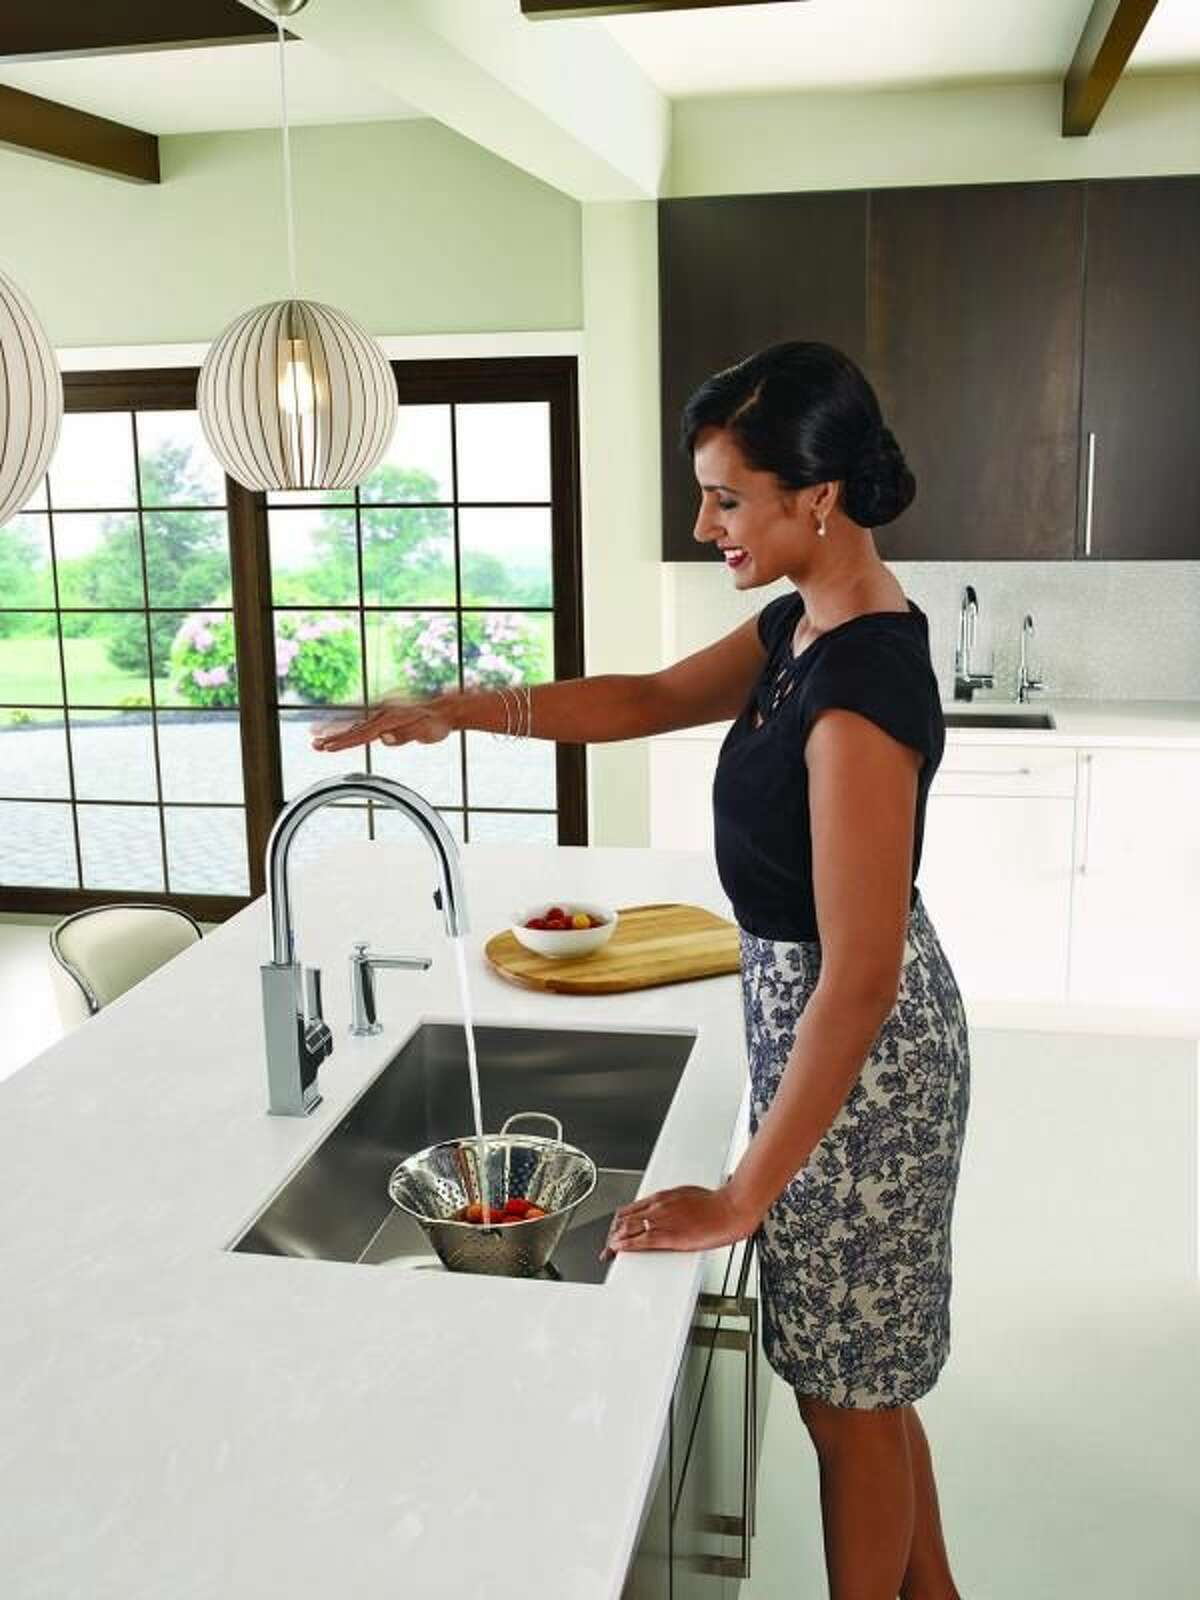 Smart House: Five Ideas to Raise Your Home's I.Q.